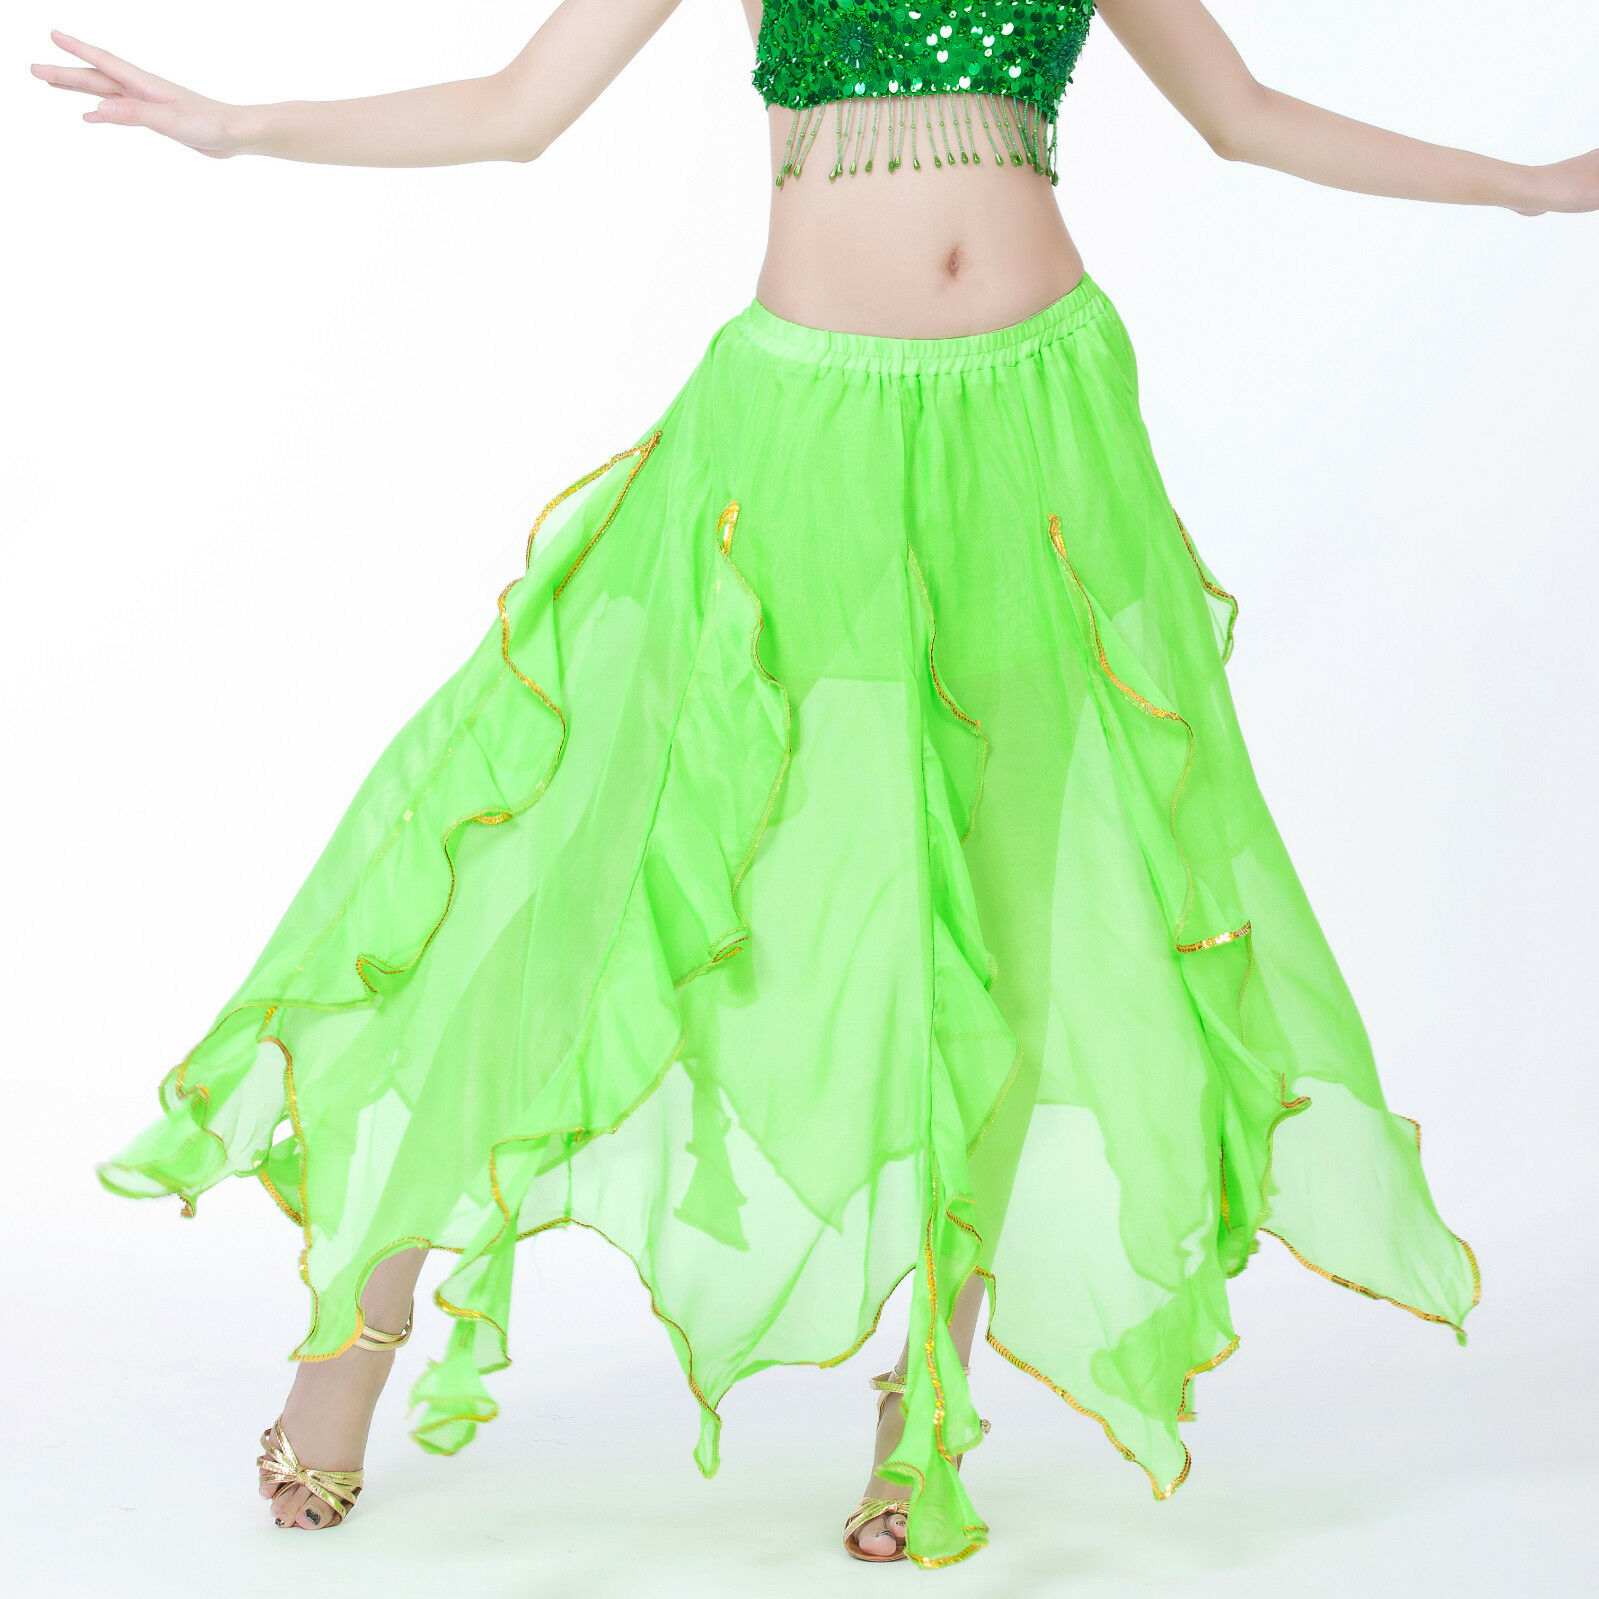 Belly Dance Costume Gold Coins Skirt 12 Colors